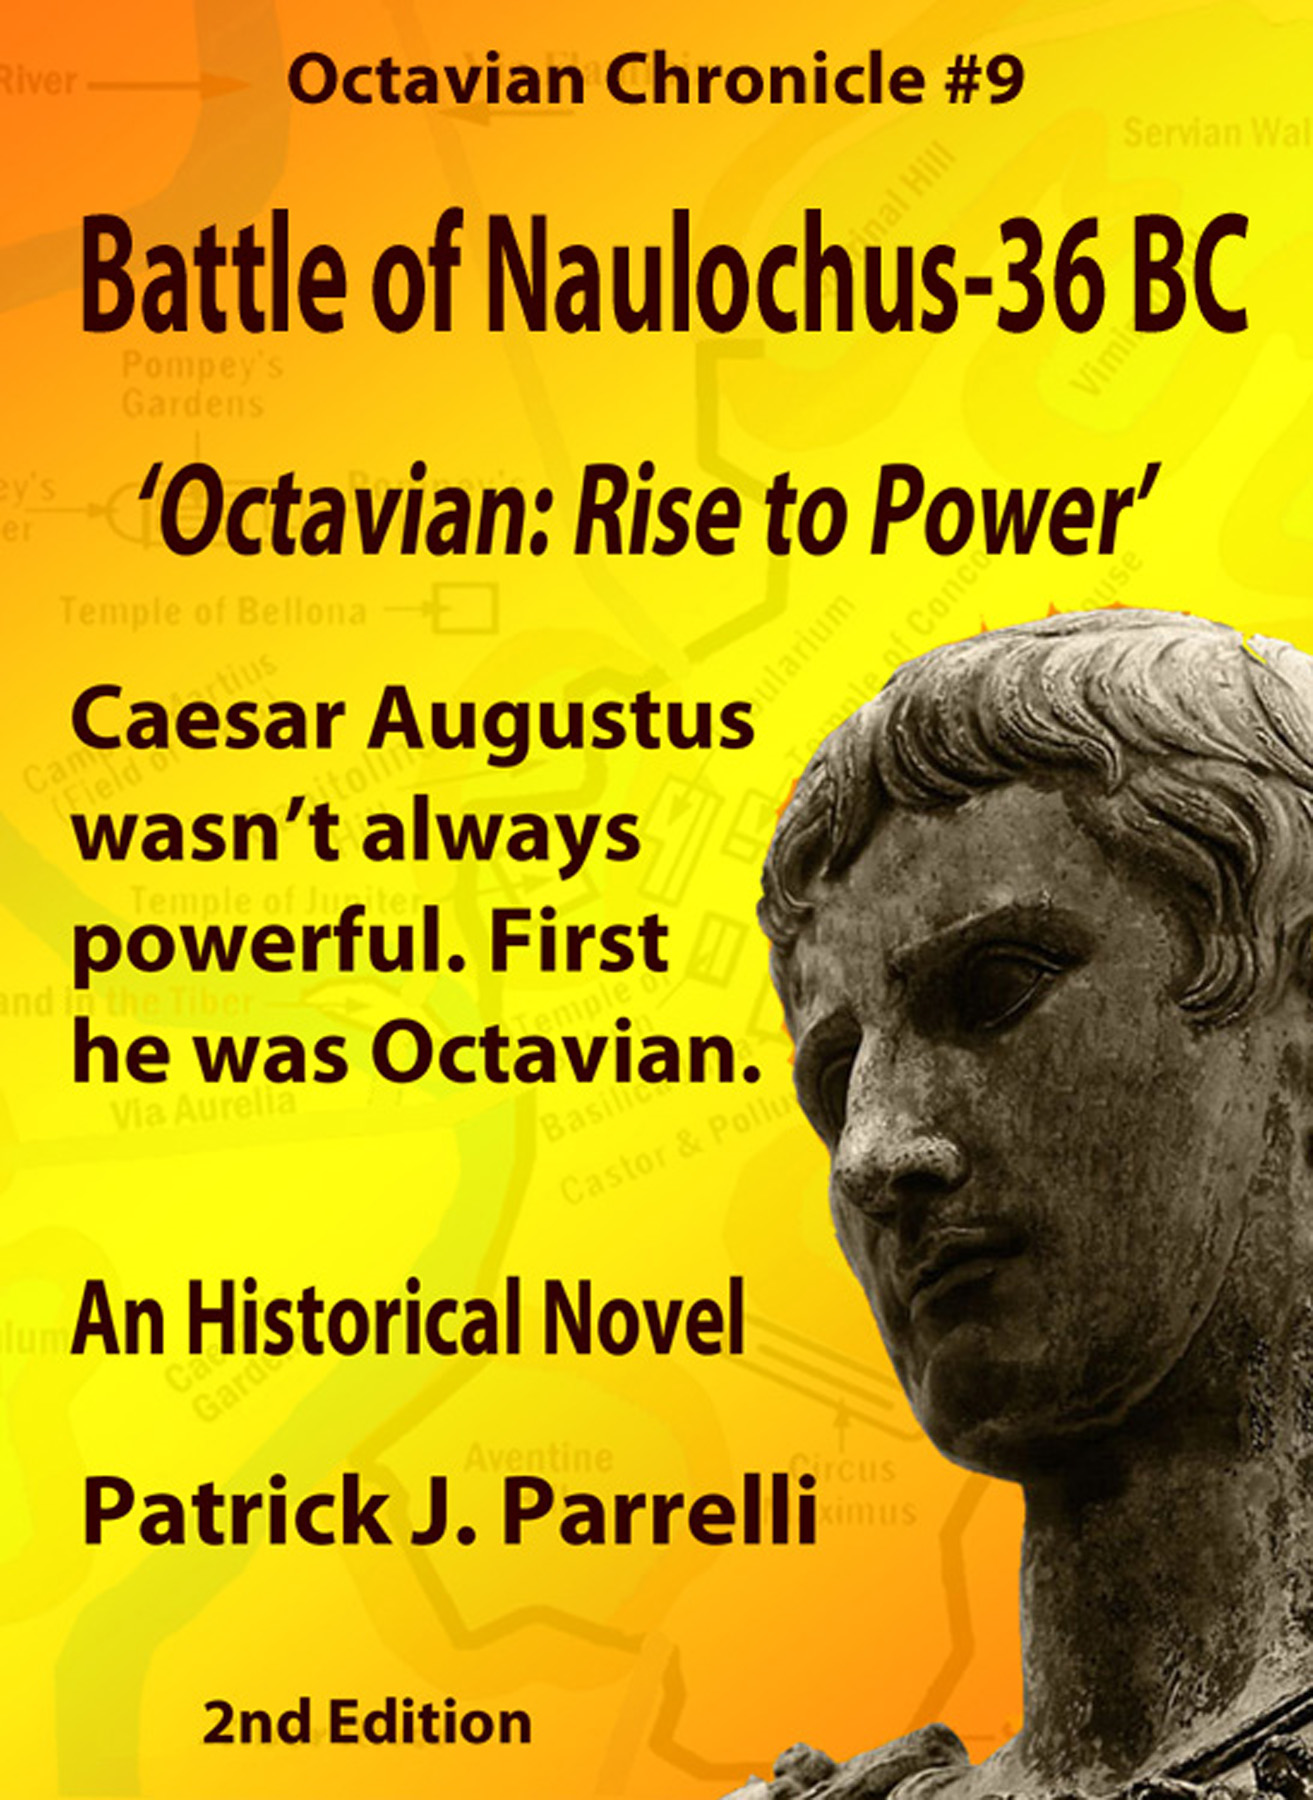 #9 Battle of Naulochus - 36 BC